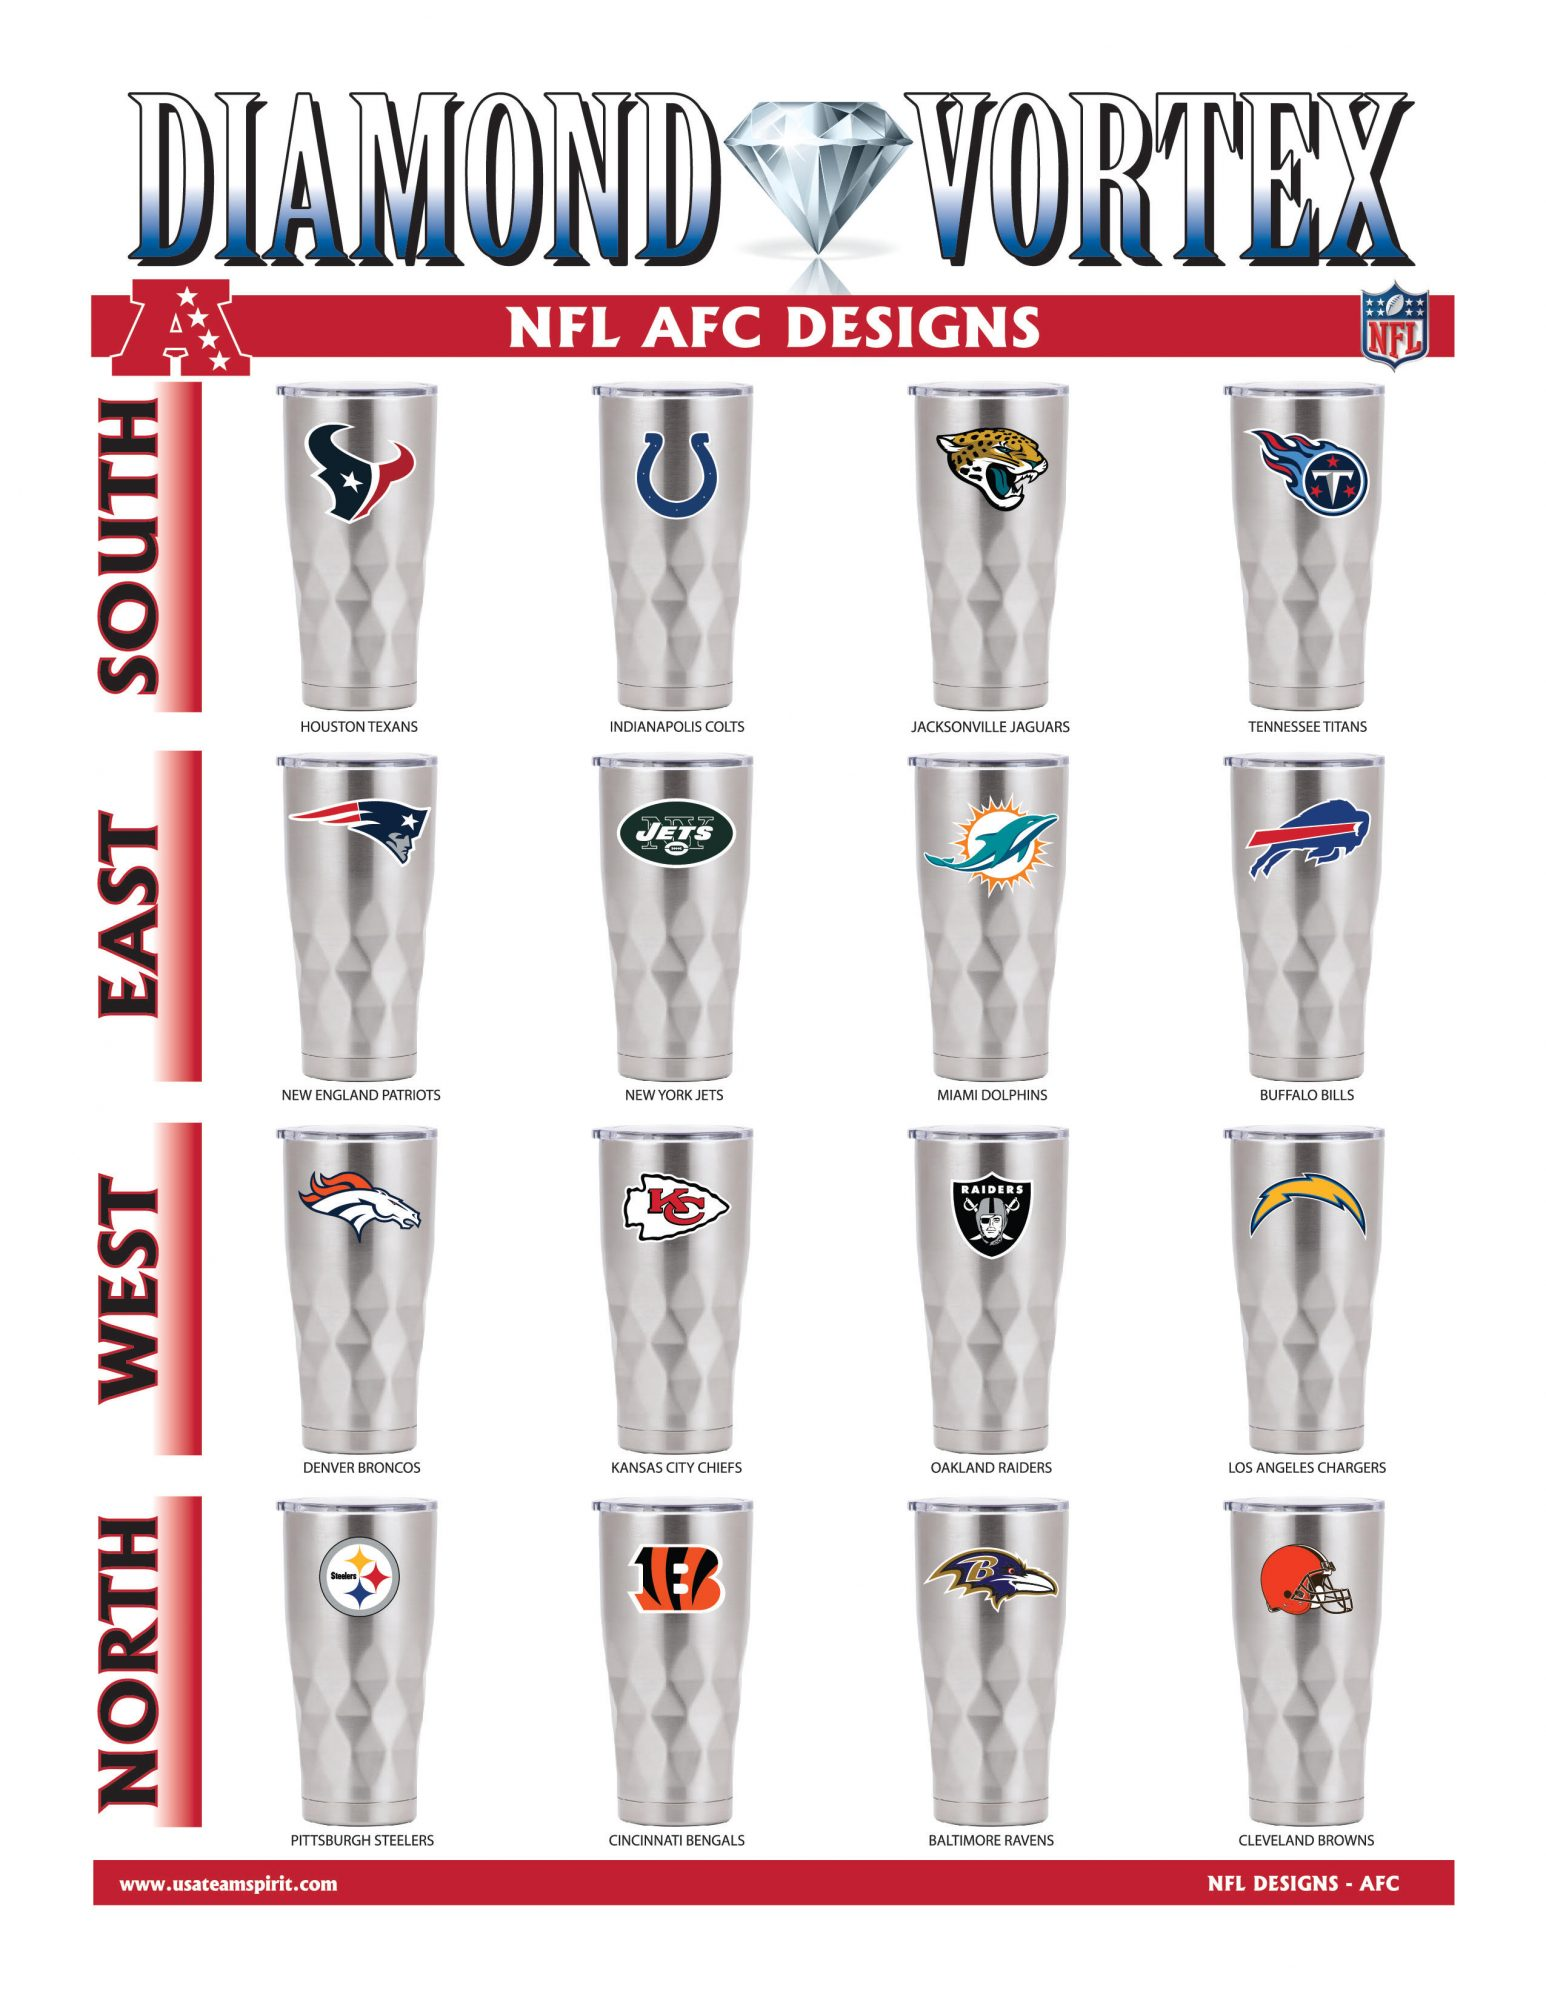 22oz NFL Diamond Vortex Page2 1